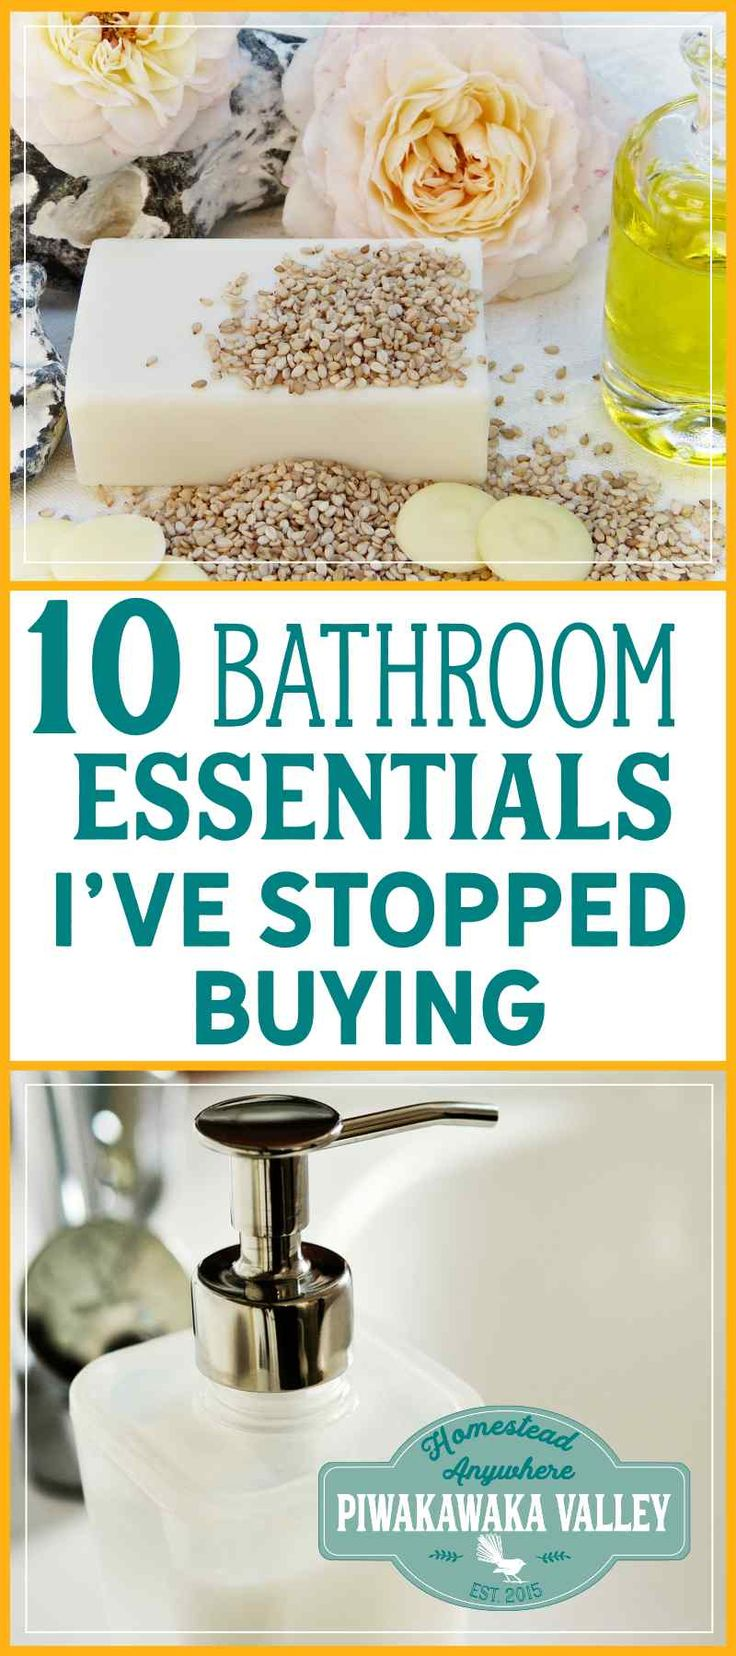 A zero waste bathroom is very difficult to achieve. Here are the 10 things I have stopped buying, and what I am doing instead. waste free, eco living, environment, recycle, plastic free alternatives, save the earth, keep it green, plastic free living, plastic free kitchen, plastic free bathroom, zero waste, tips, tricks, zero waste hacks, challenge, products, stainless steel, lunchboxes, waste free home, wastefree zero waste, bags, green, environment #plasticfreejuly #plasticfree…